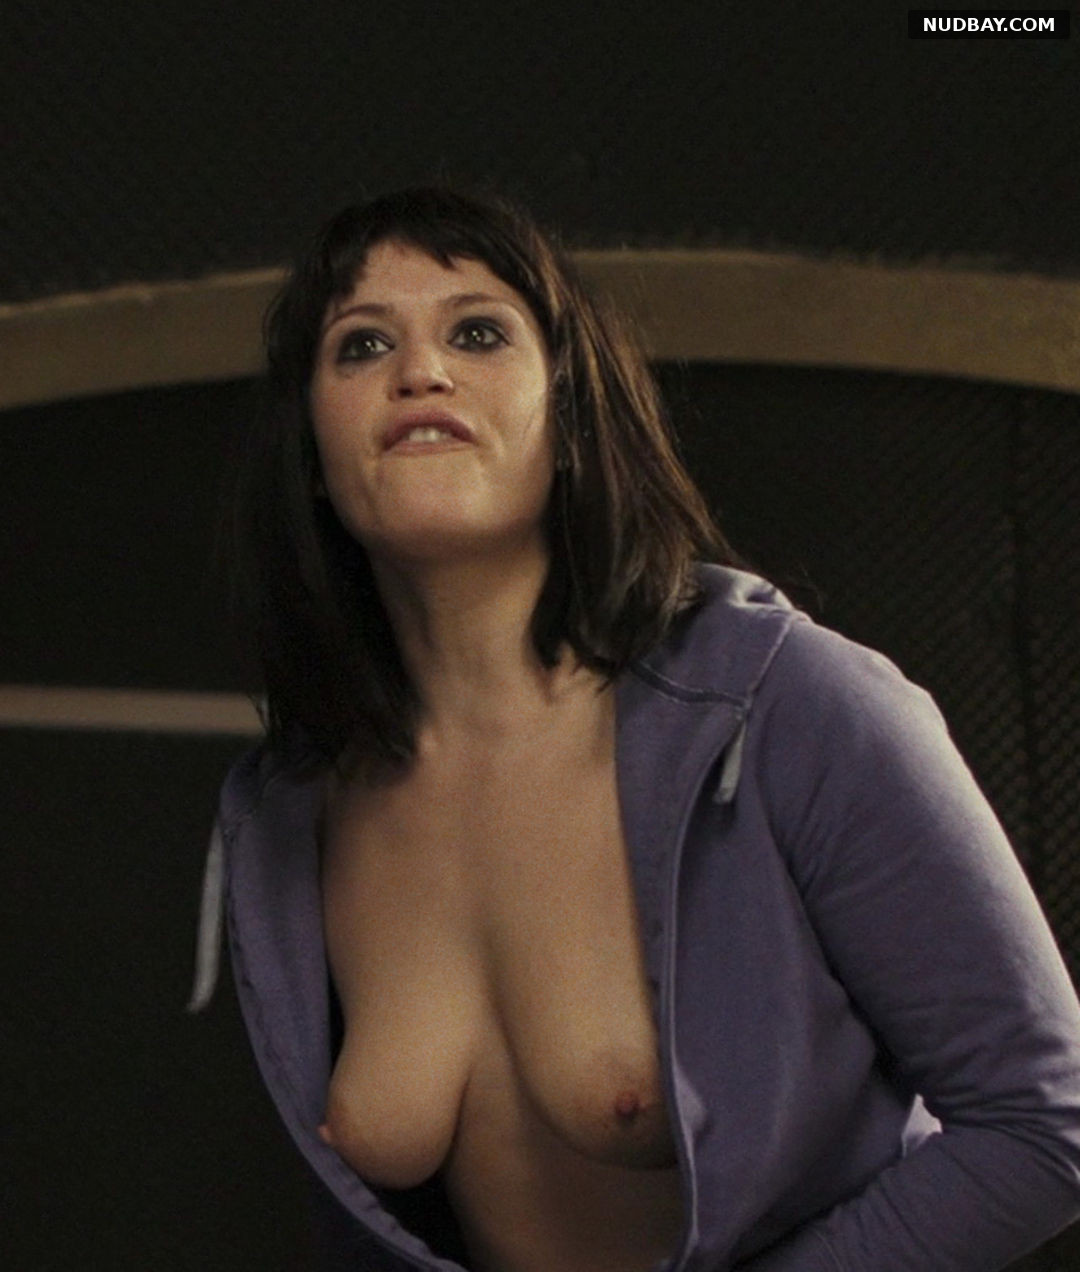 Gemma Arterton Nude in The Disappearance of Alice Creed